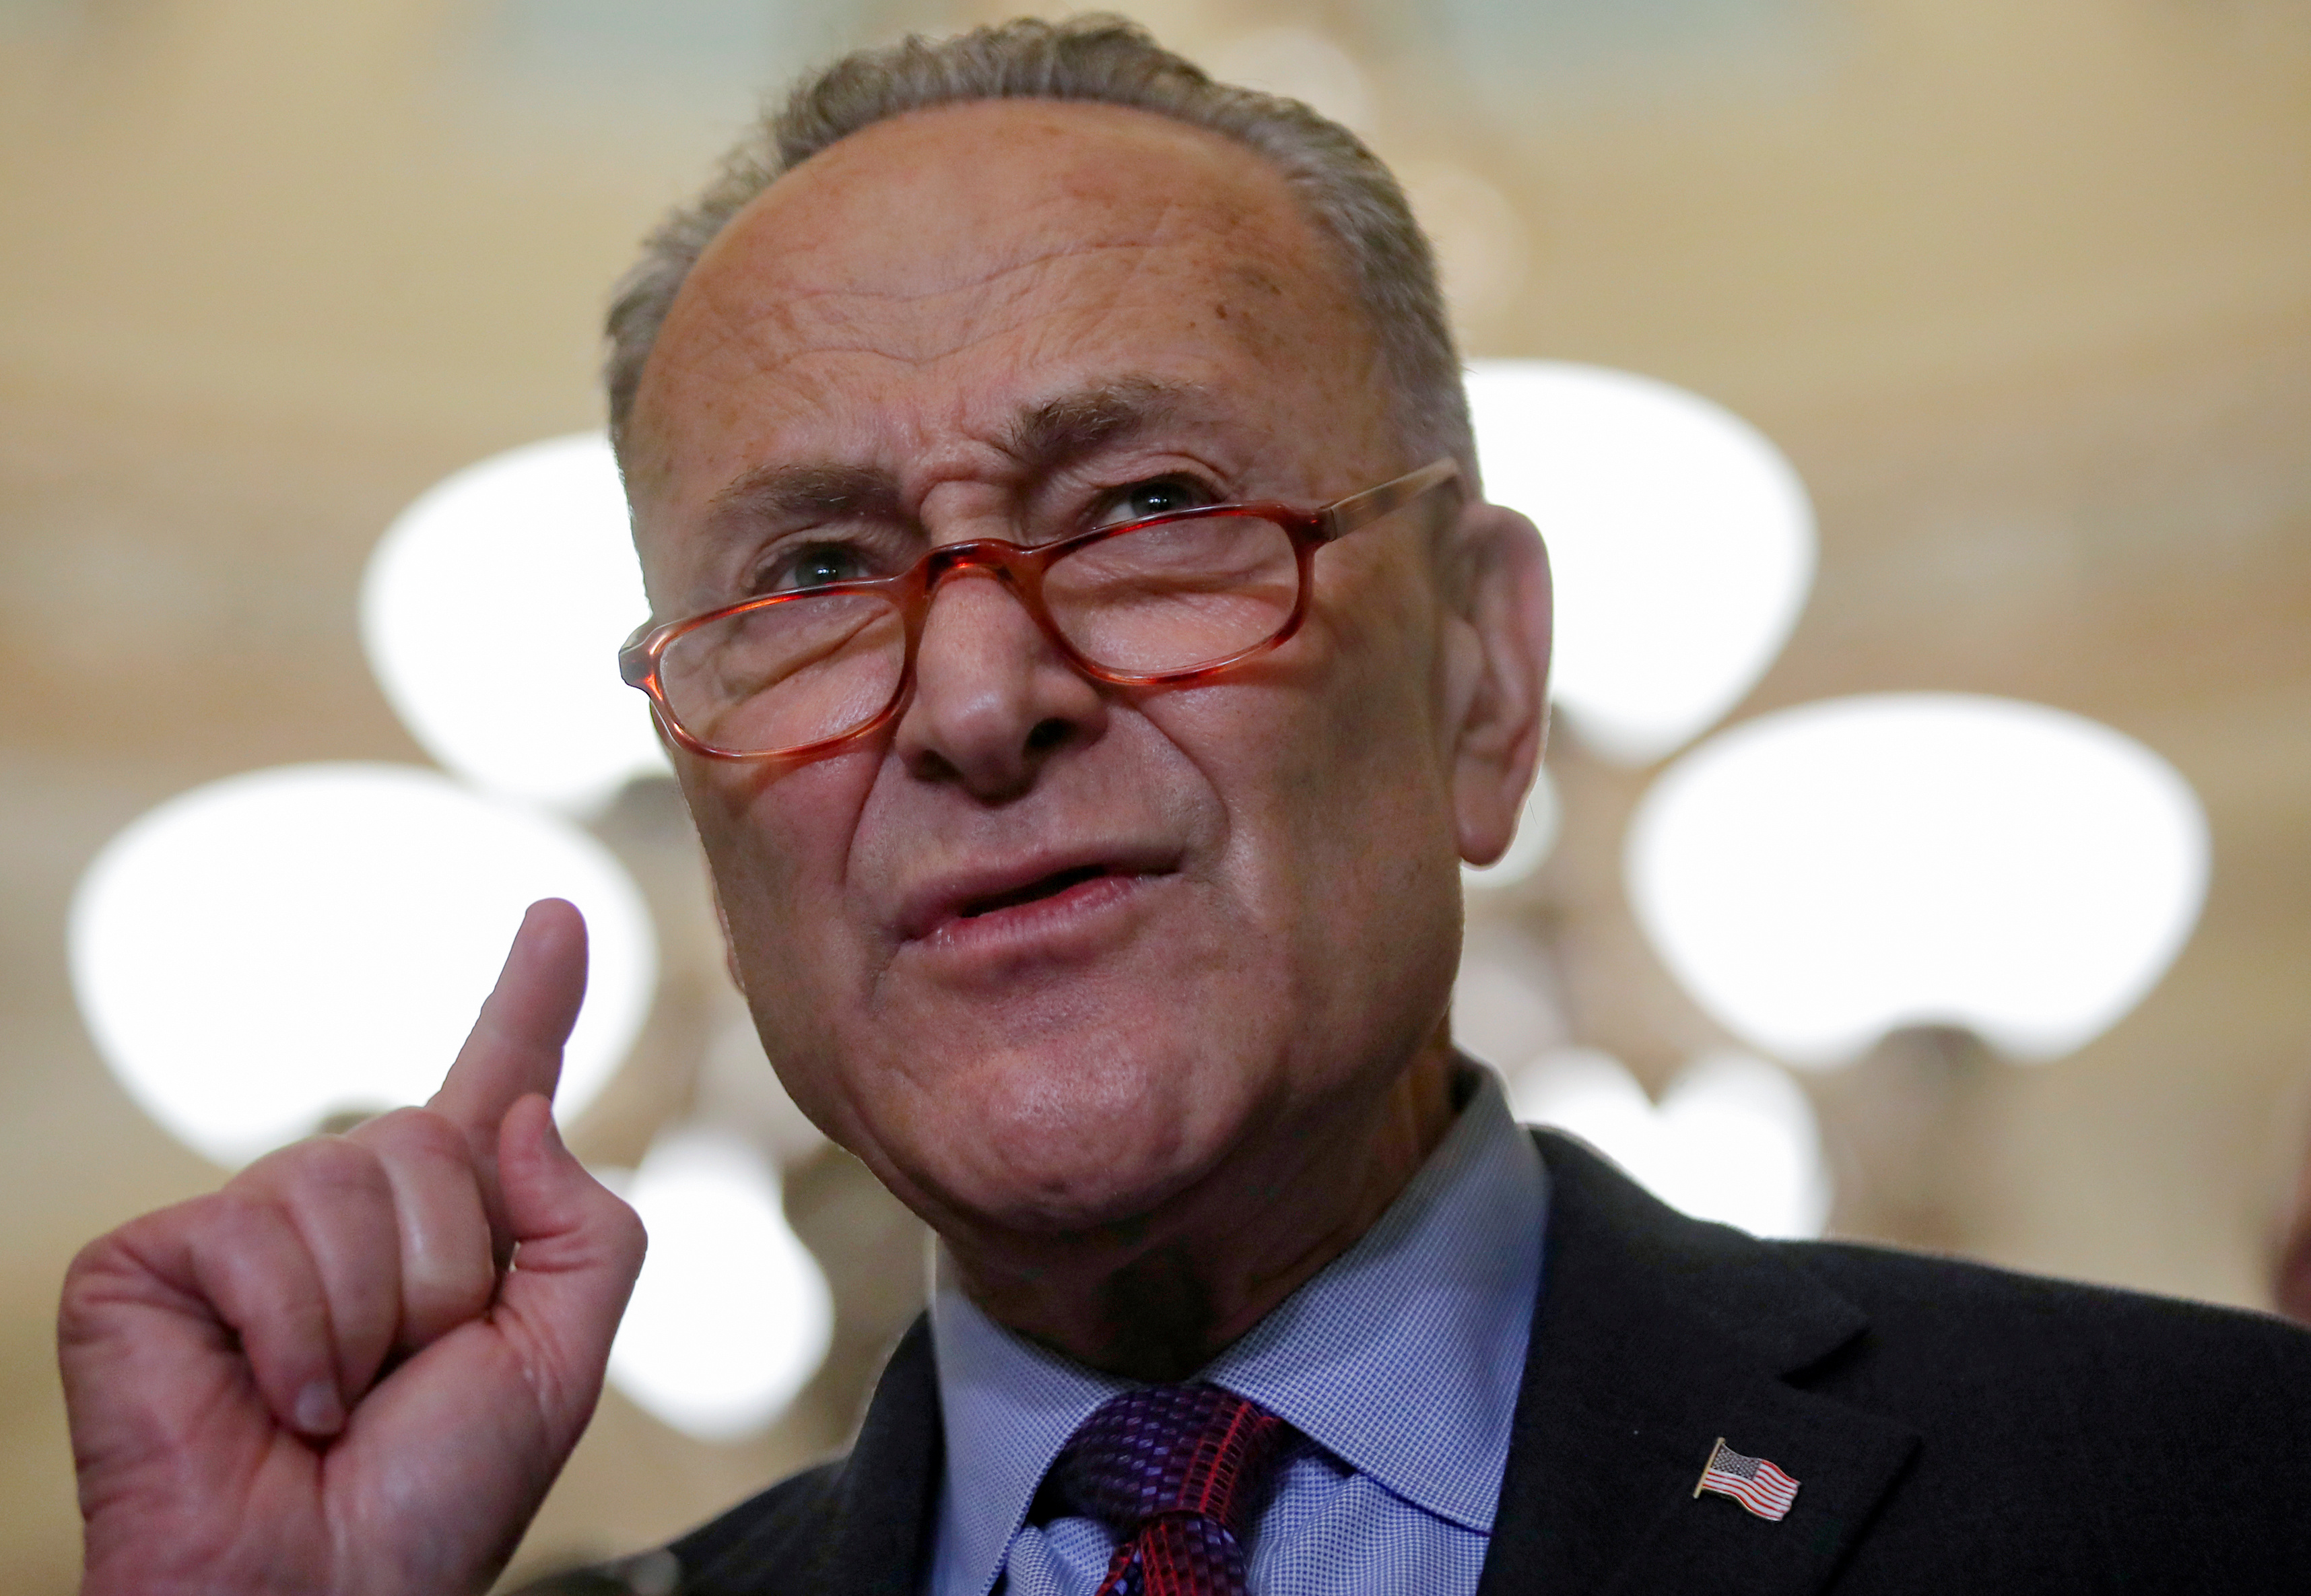 U.S. Senate Minority Leader Chuck Schumer (D-NY) speaks on Capitol Hill in Washington